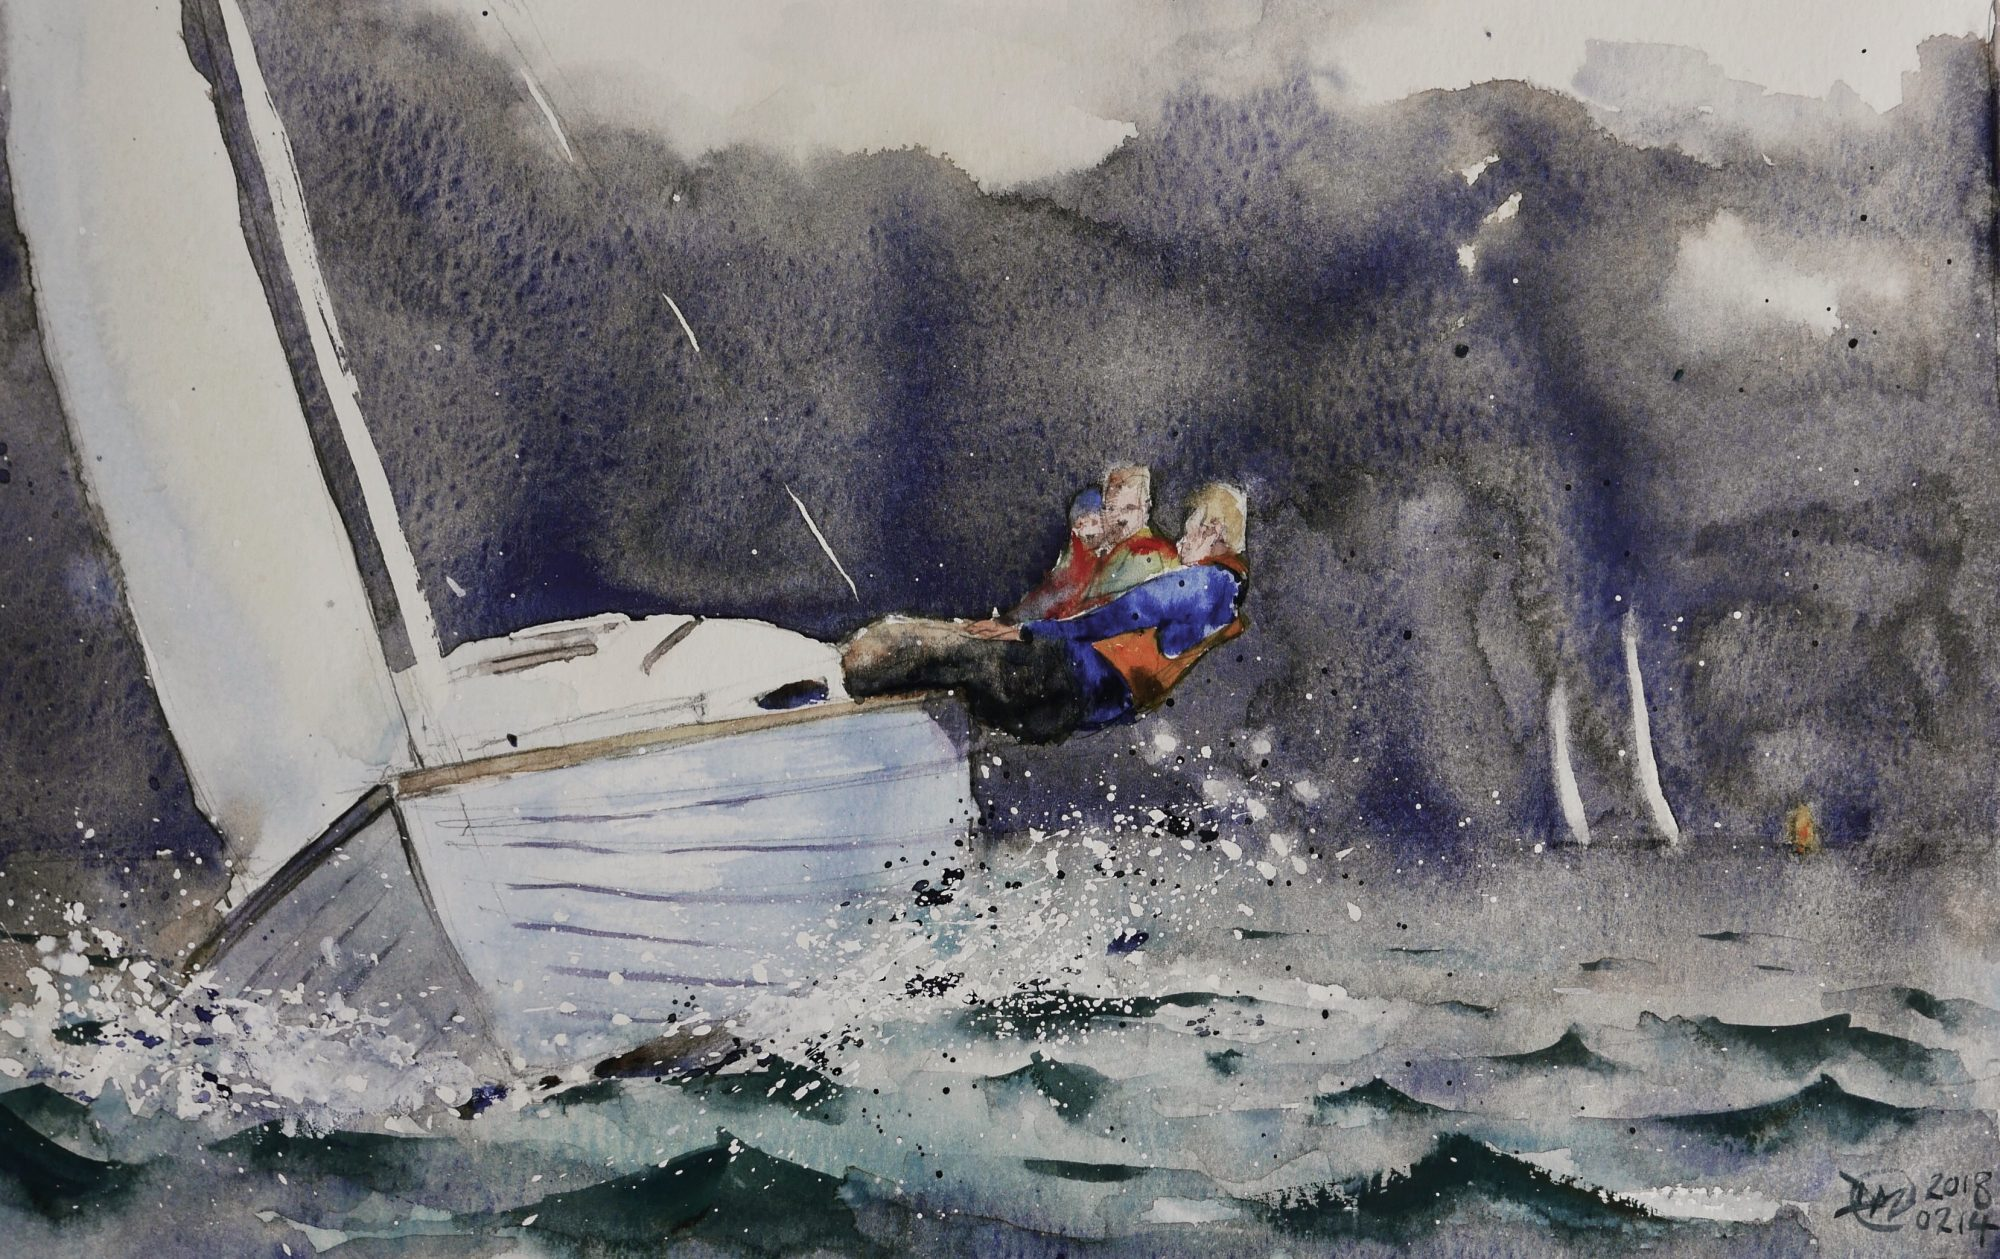 Moleskin watercolour sketch of Folkboat by David Meldrum